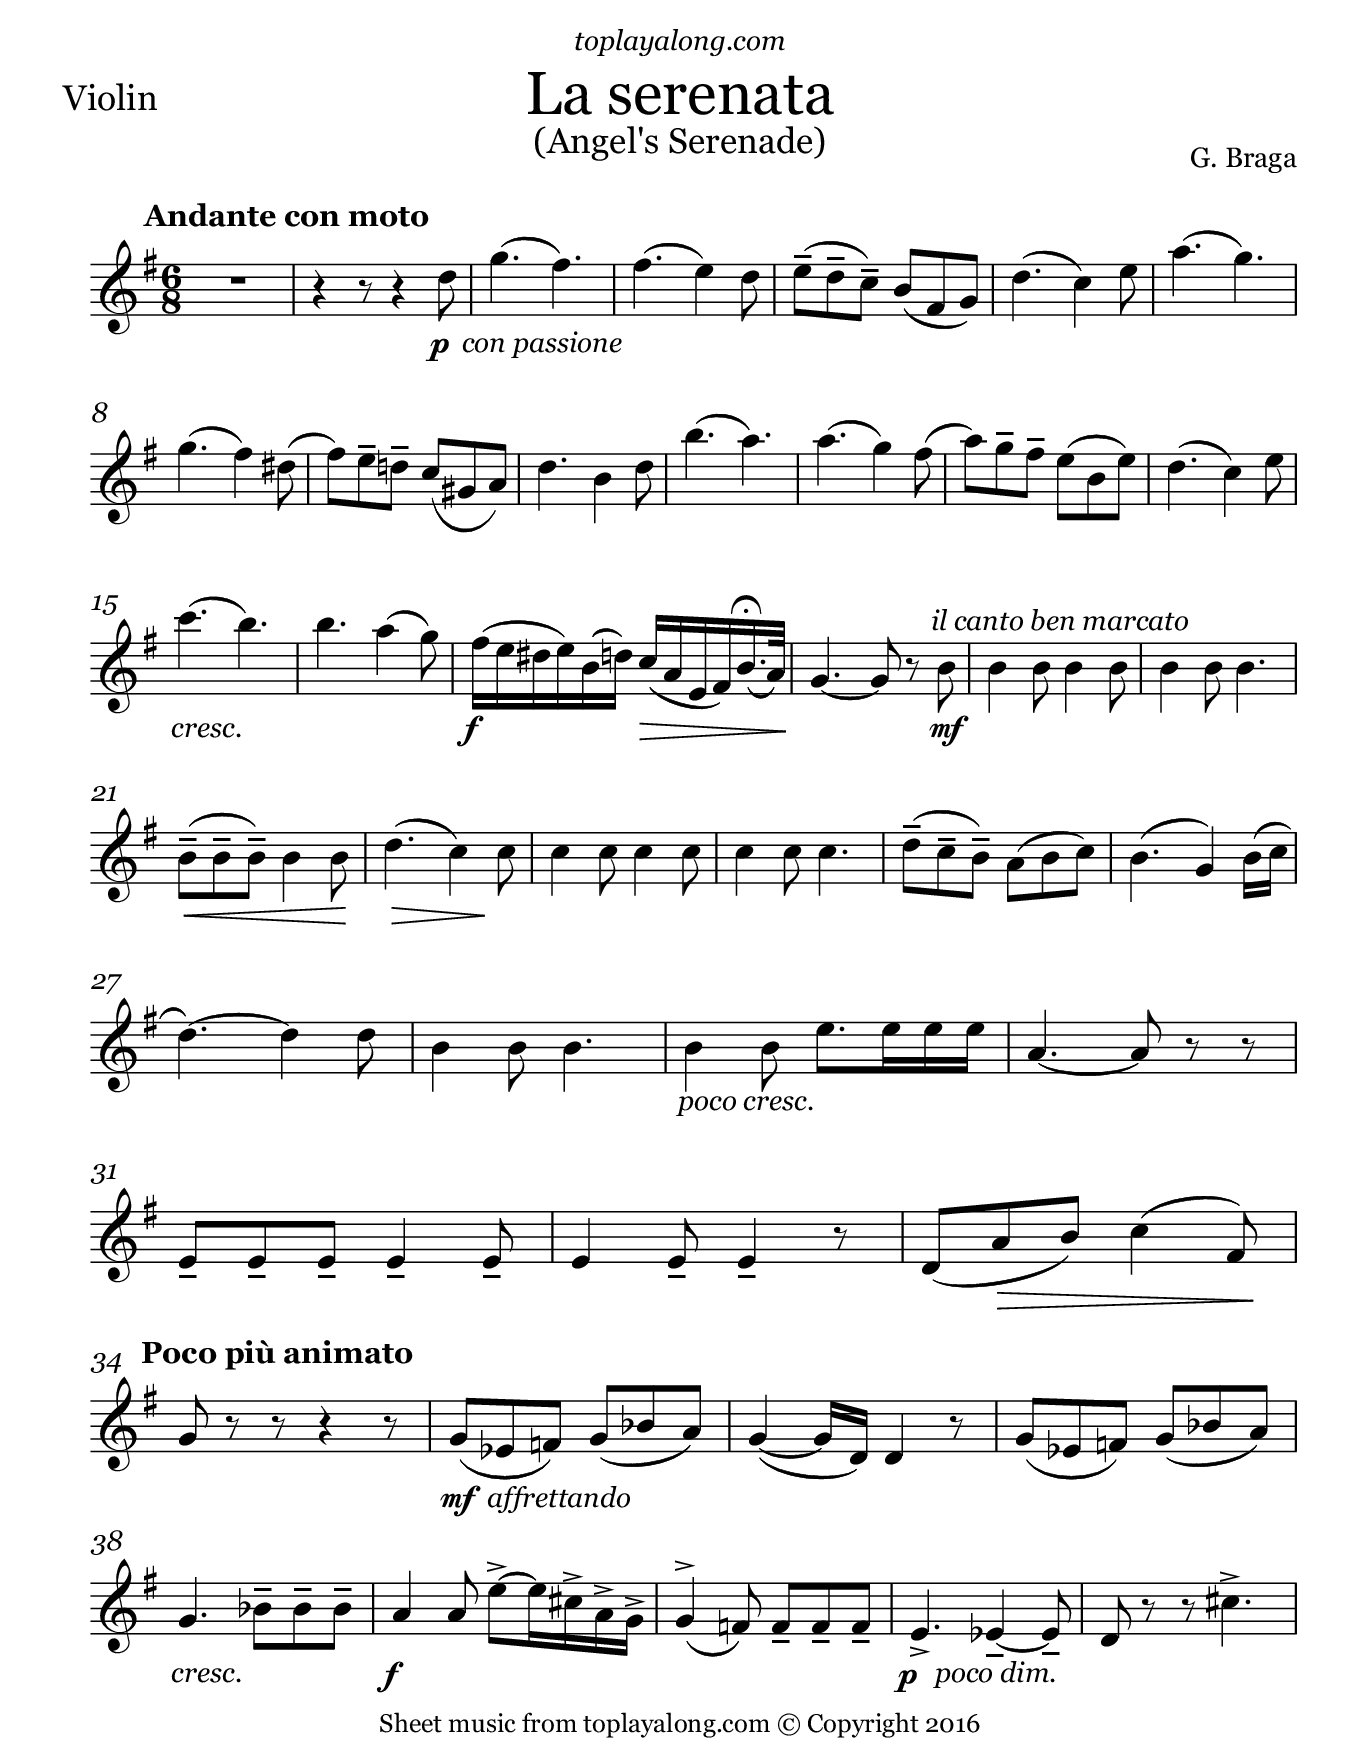 La seranata (Angel's Serenade) by Braga. Sheet music for Violin, page 1.